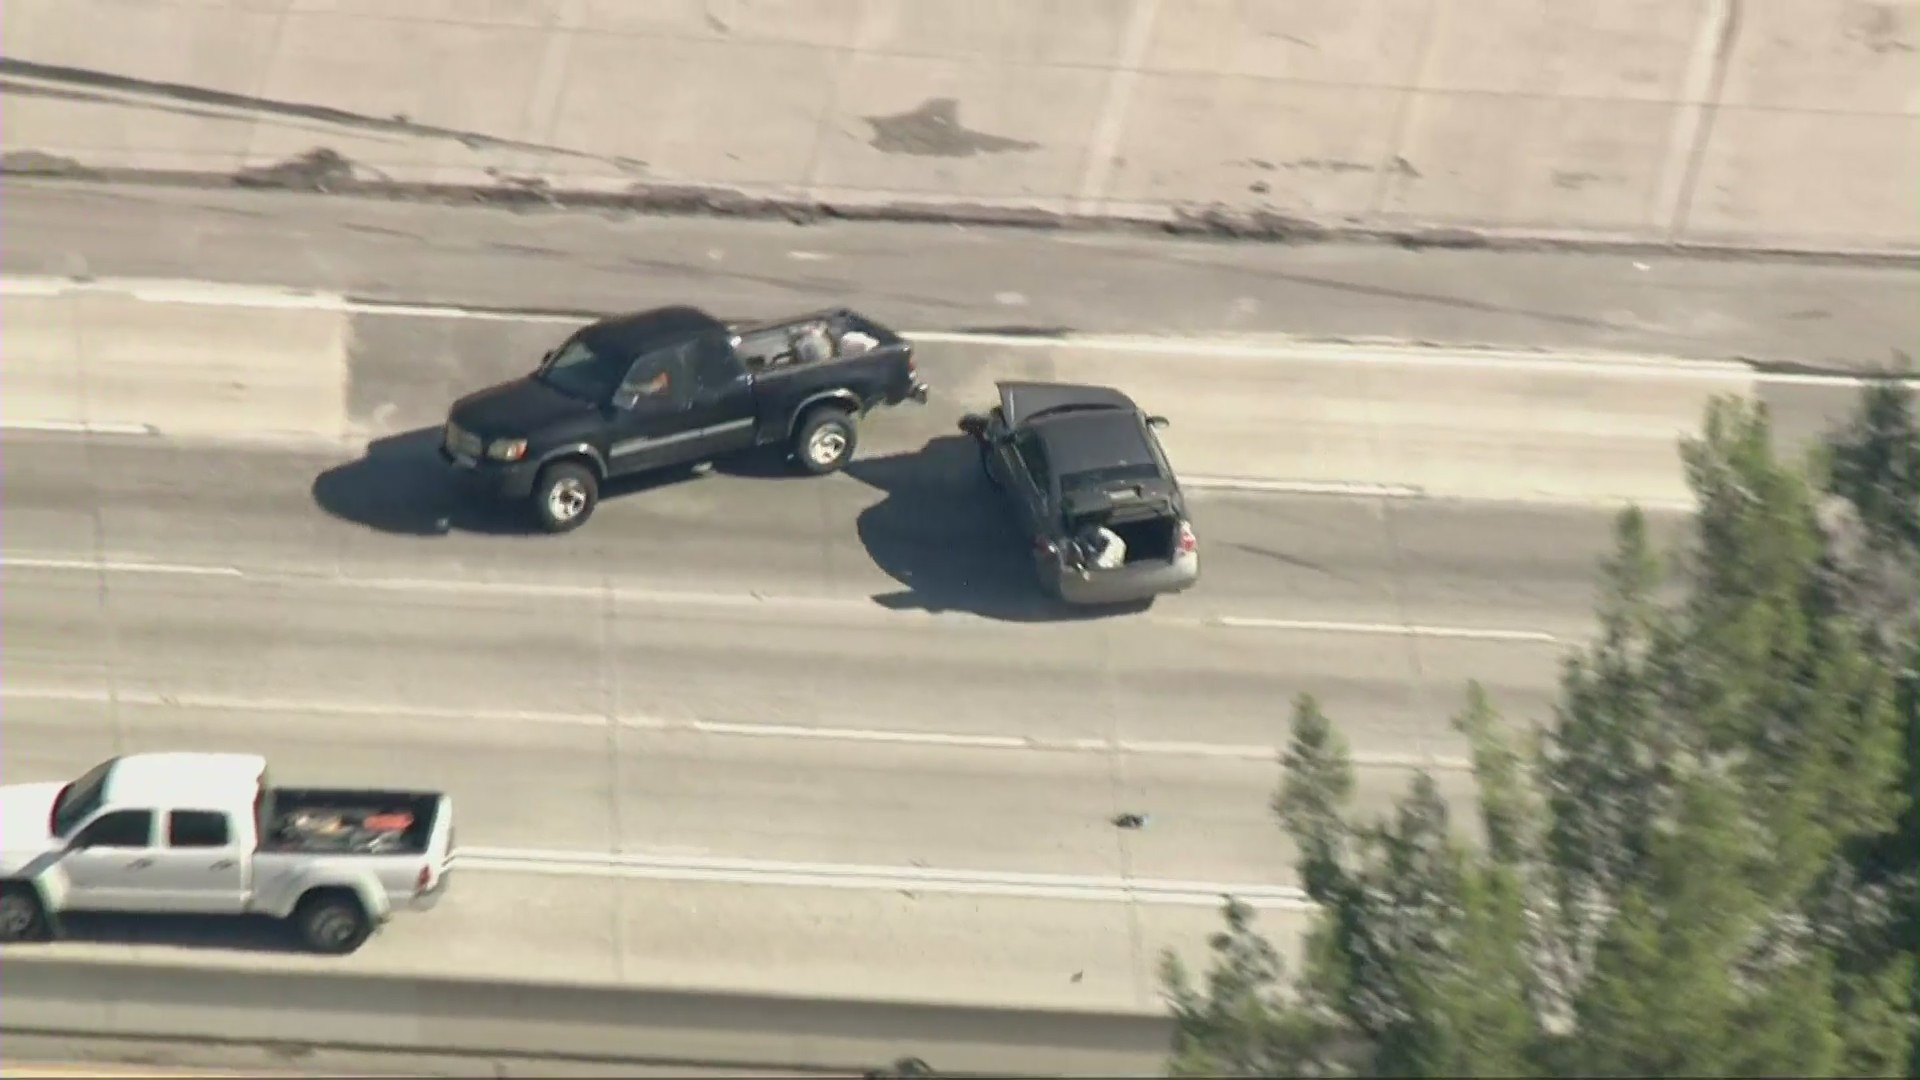 The driver in a pursuit across the San Gabriel Valley crashed into two trucks along the 210 Freeway on Aug. 2, 2021. (KTLA)